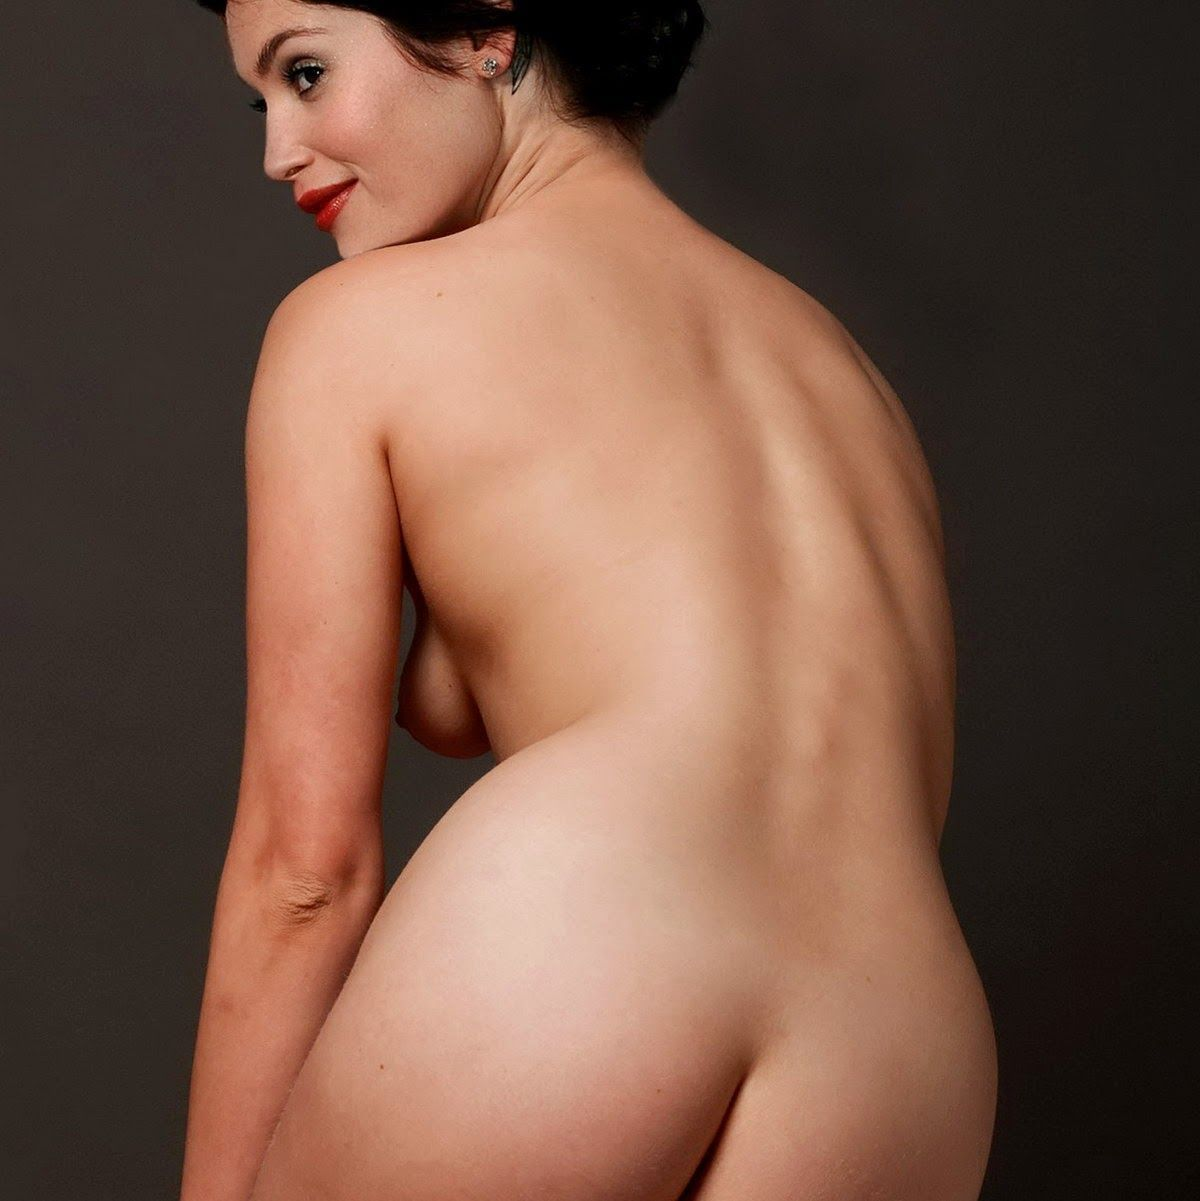 Gemma arterton butt naked